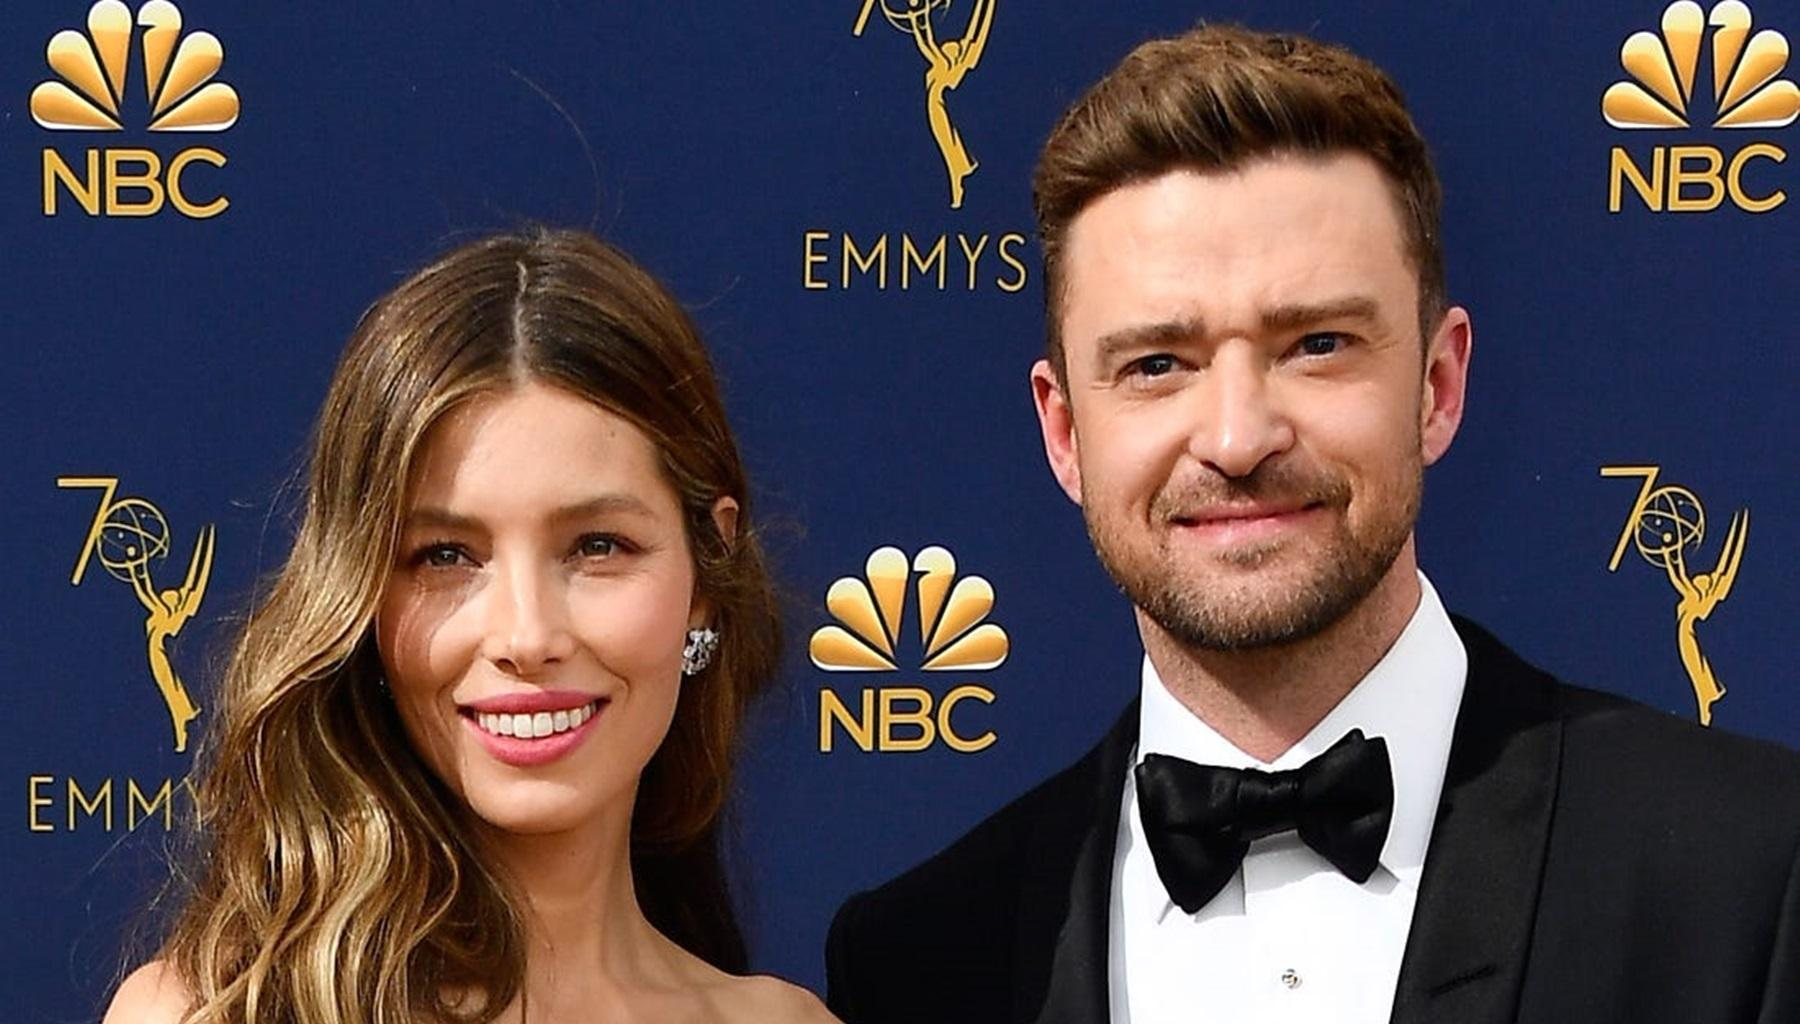 Jessica Biel Reacts After Justin Timberlake Breaks Silence About Rumors That He Cheated With Co-Star Alisha Wainwright -- Did He Do Enough?